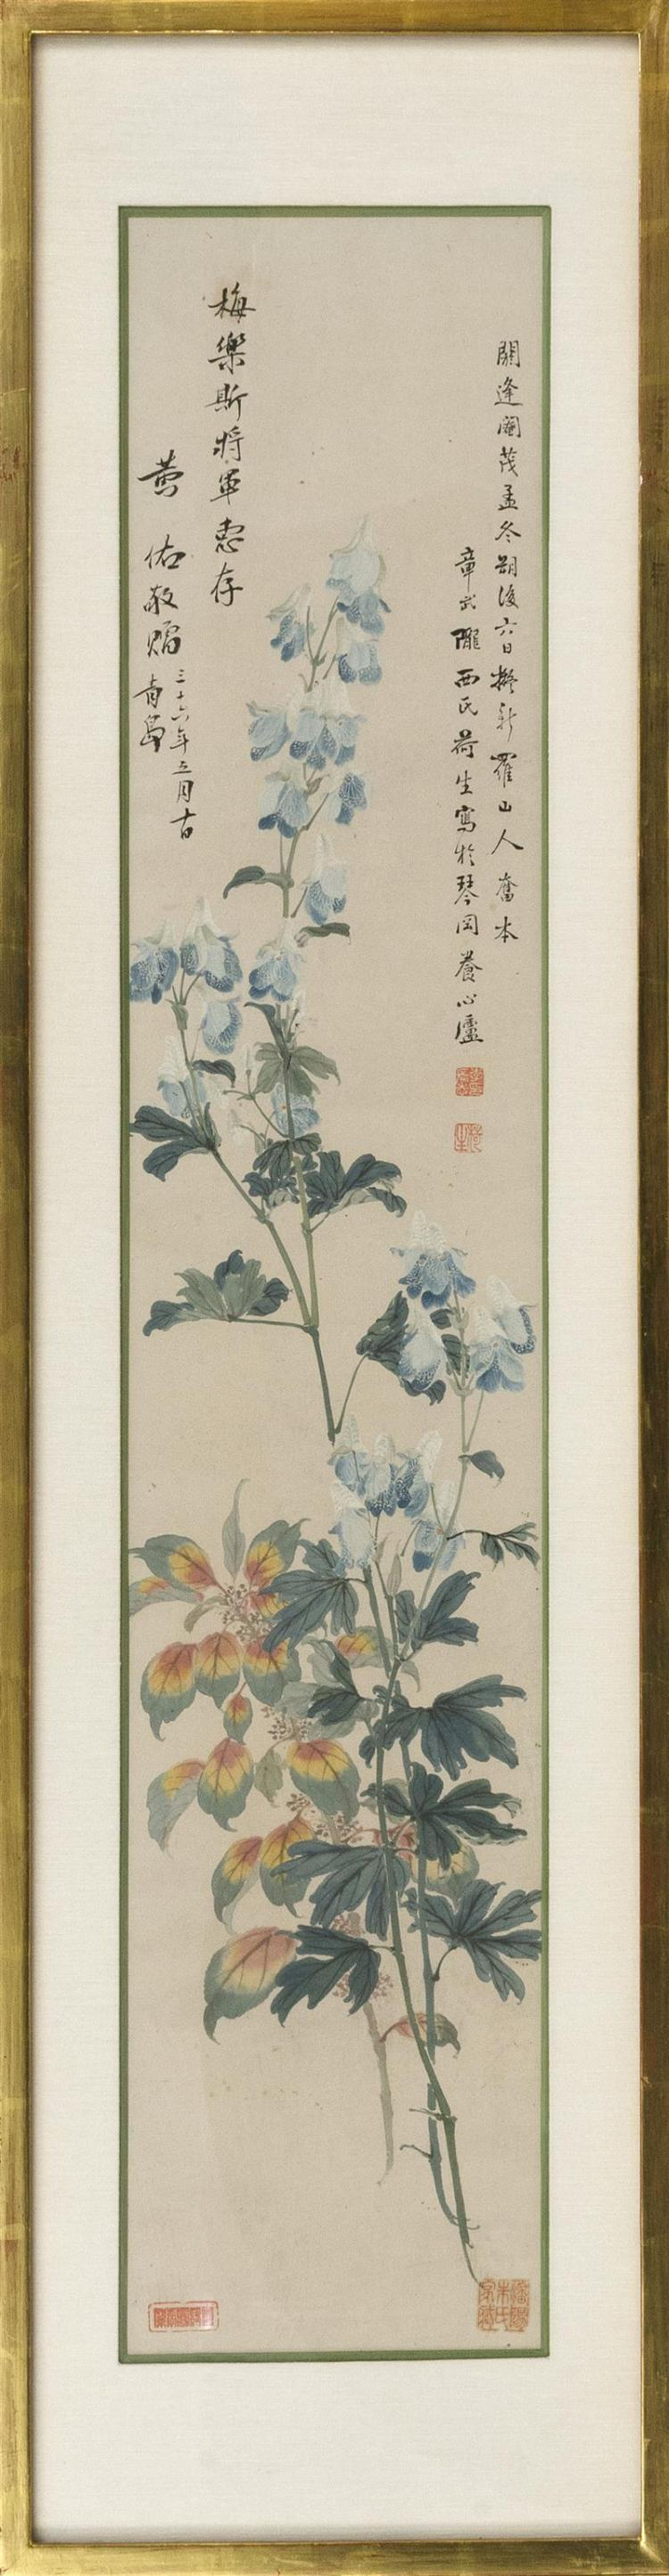 3SCROLL PAINTING ON PAPER Blue delphiniums. With inscription and four seal marks. 43